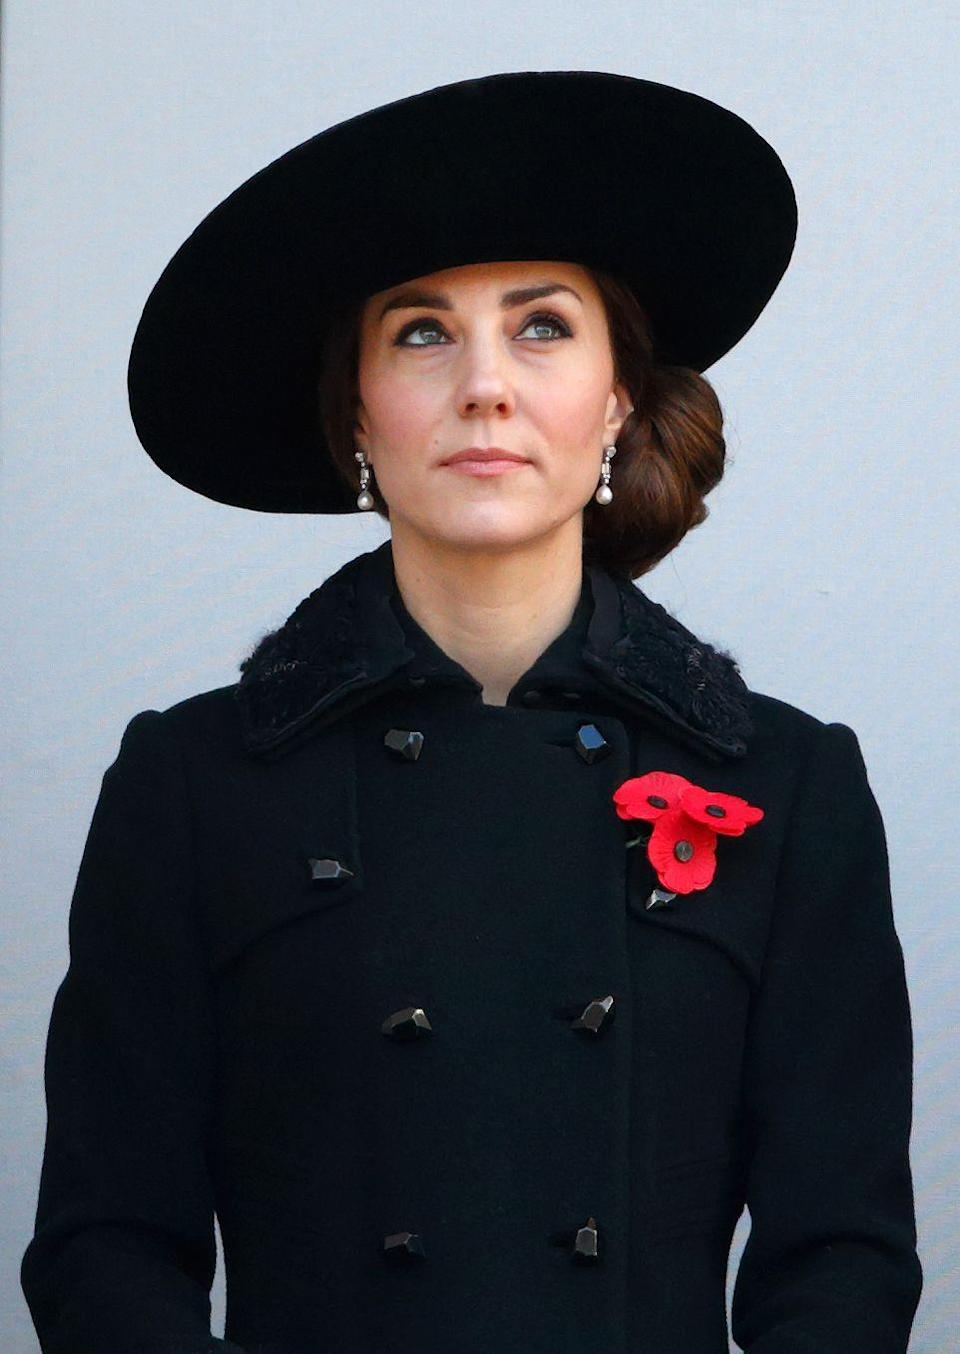 "<p>A classic black look will never go out of style, but the royals reserve it for evenings and funerals. The Queen made a rule that <a href=""https://www.goodhousekeeping.com/life/a45377/the-royal-family-spare-black-outfit/"" rel=""nofollow noopener"" target=""_blank"" data-ylk=""slk:all members of the family must bring a black outfit"" class=""link rapid-noclick-resp"">all members of the family must bring a black outfit</a> with them when traveling in case there is a sudden death while they're away.</p><p><strong>RELATED:</strong> <a href=""https://www.goodhousekeeping.com/beauty/fashion/g24472567/royal-outfits-hidden-meanings/"" rel=""nofollow noopener"" target=""_blank"" data-ylk=""slk:The Secret Messages Behind Royal Clothing"" class=""link rapid-noclick-resp"">The Secret Messages Behind Royal Clothing </a></p>"